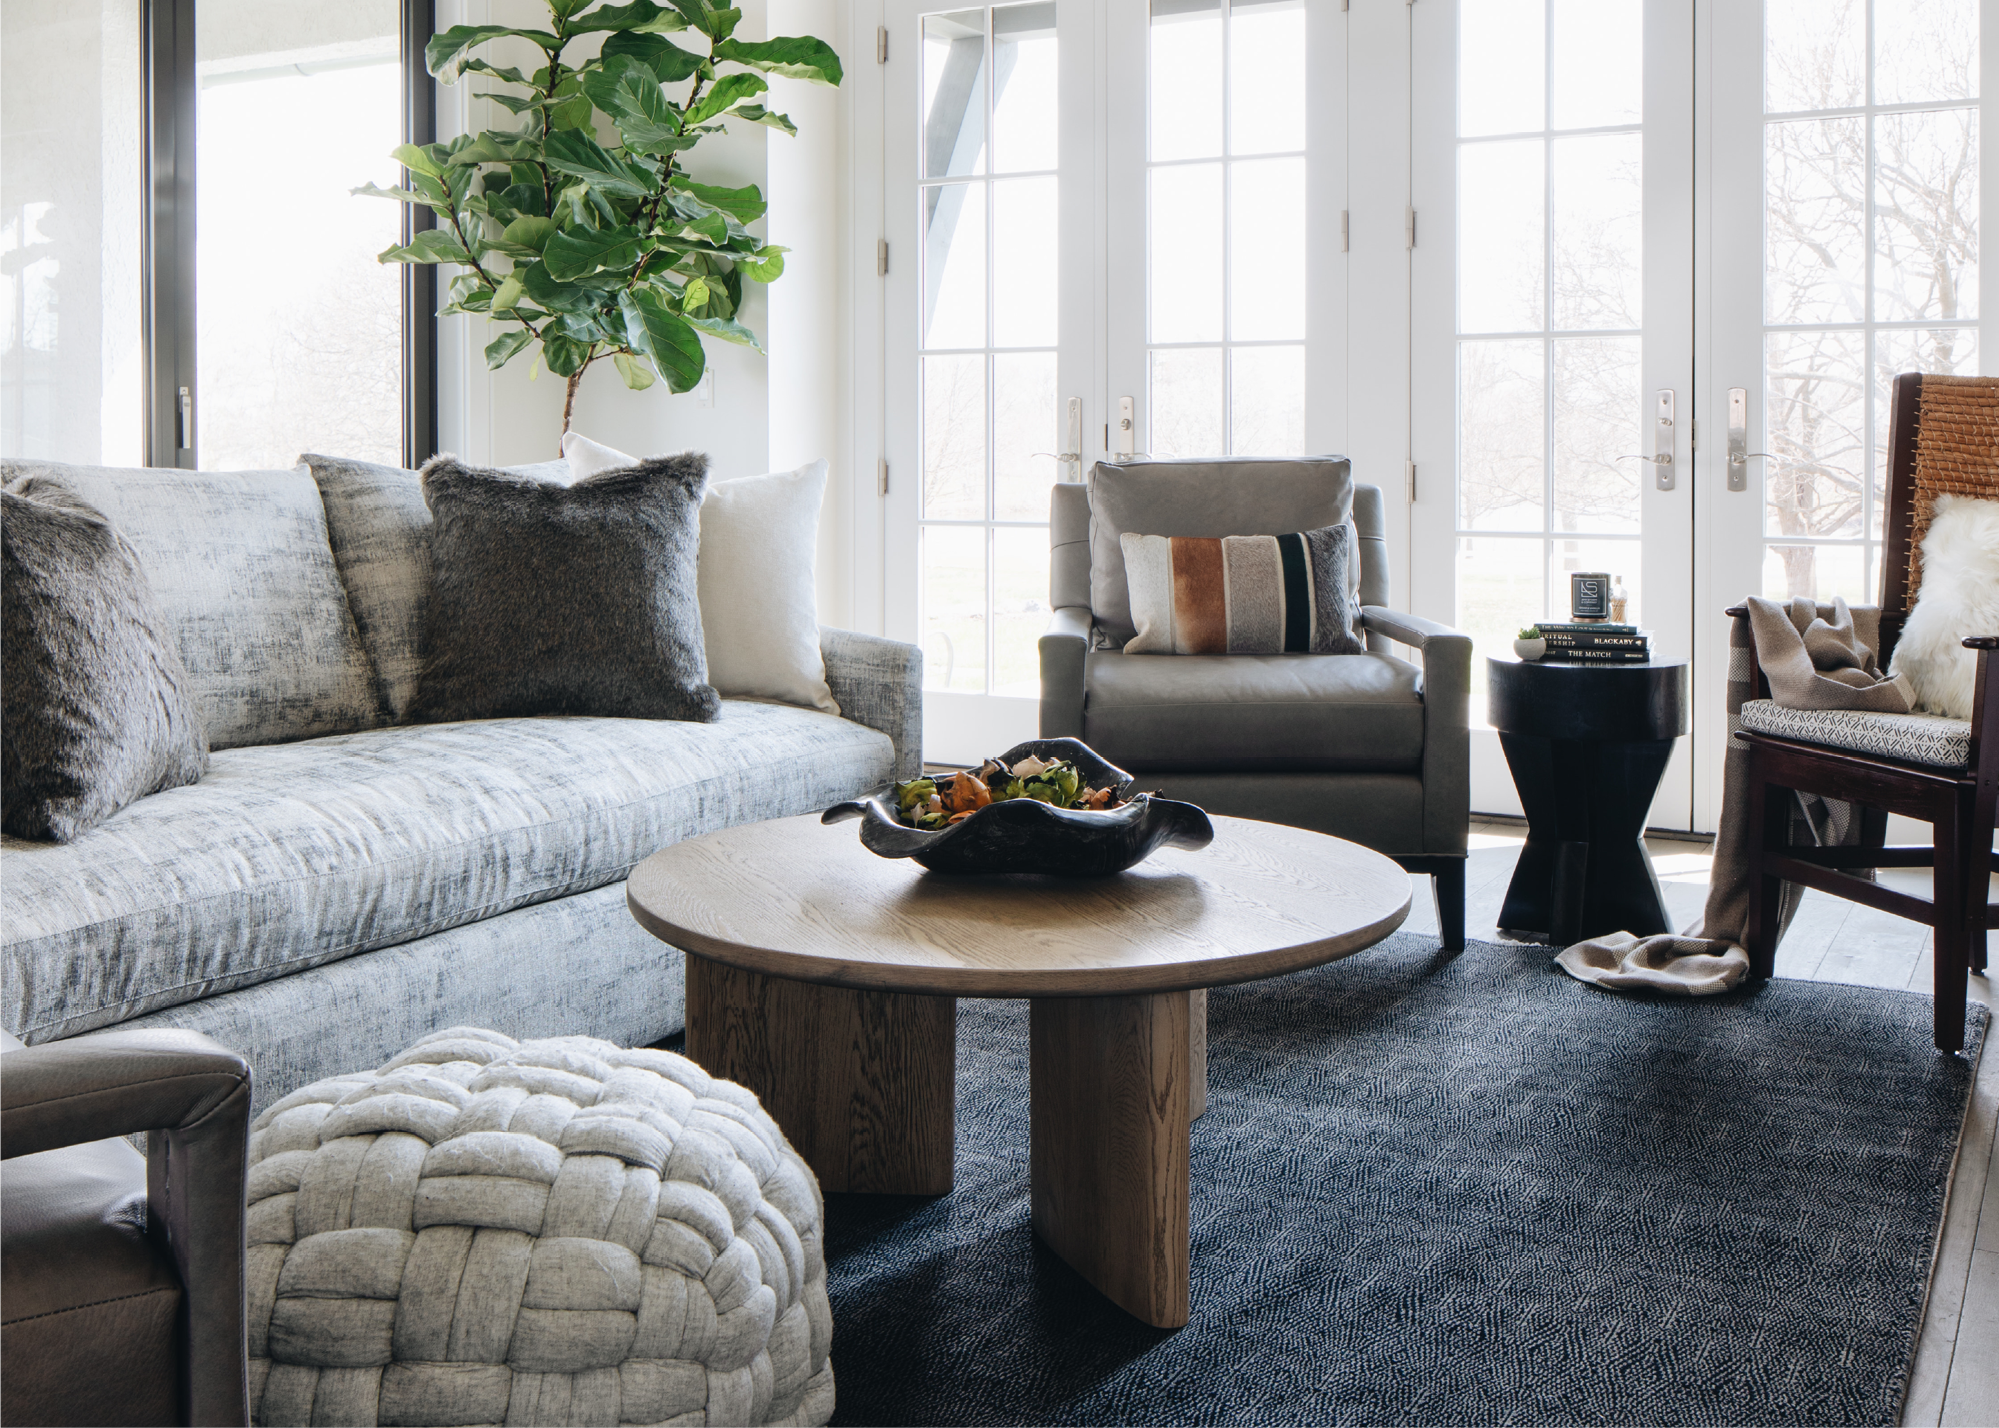 Shop The Look: Group Effort/The Living Room